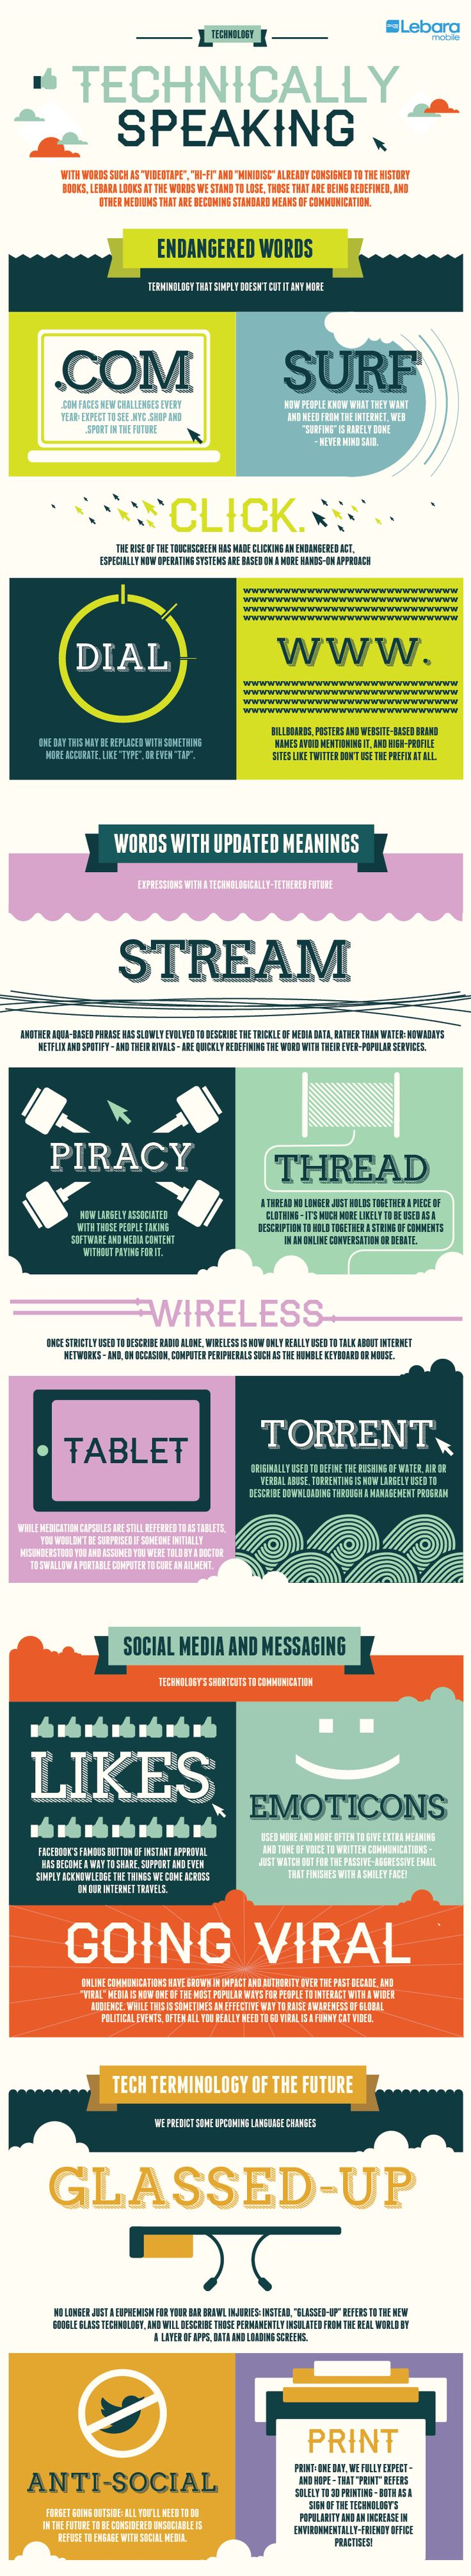 Geek-Speak: A Guide to New & Outdated Technology Terms